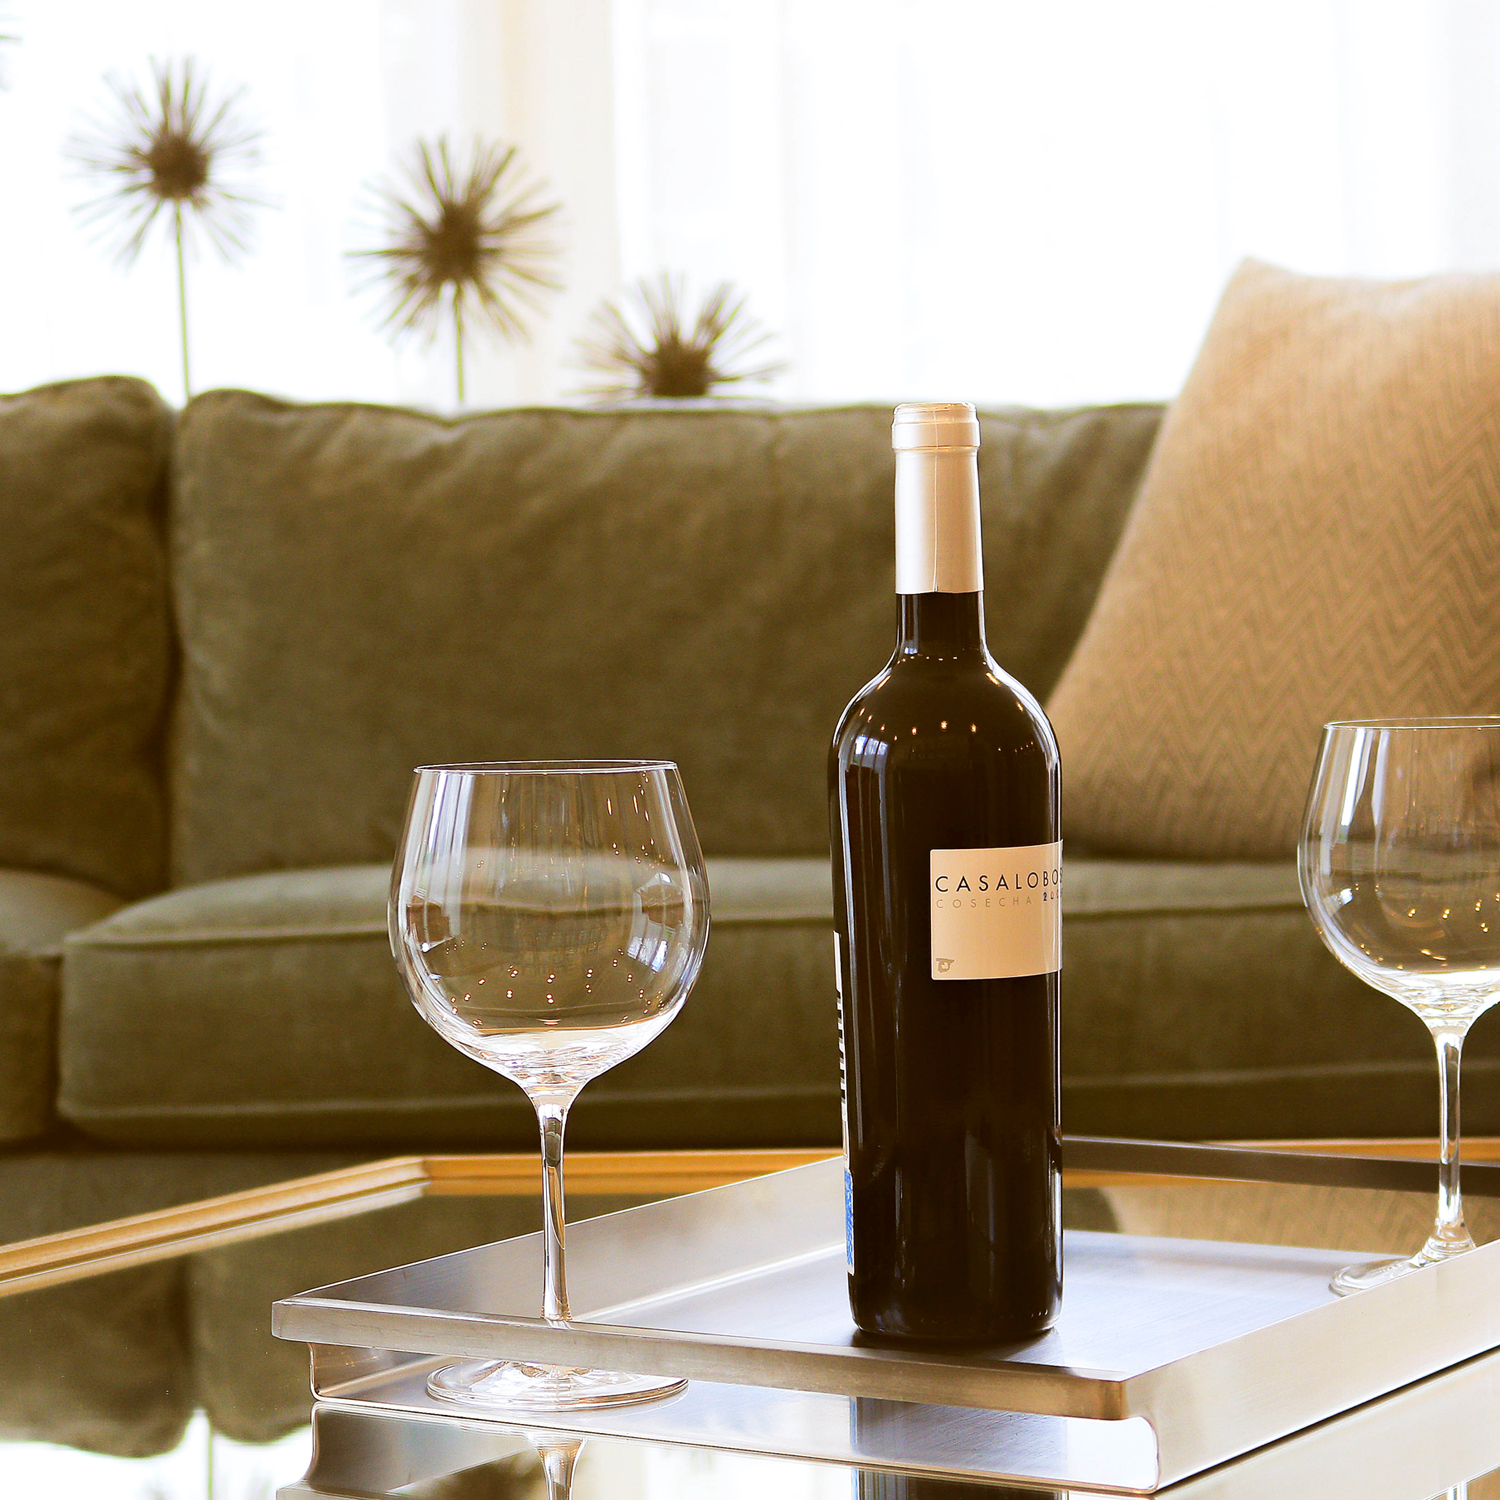 Bottle of wine and two glasses on coffee table, couch in background